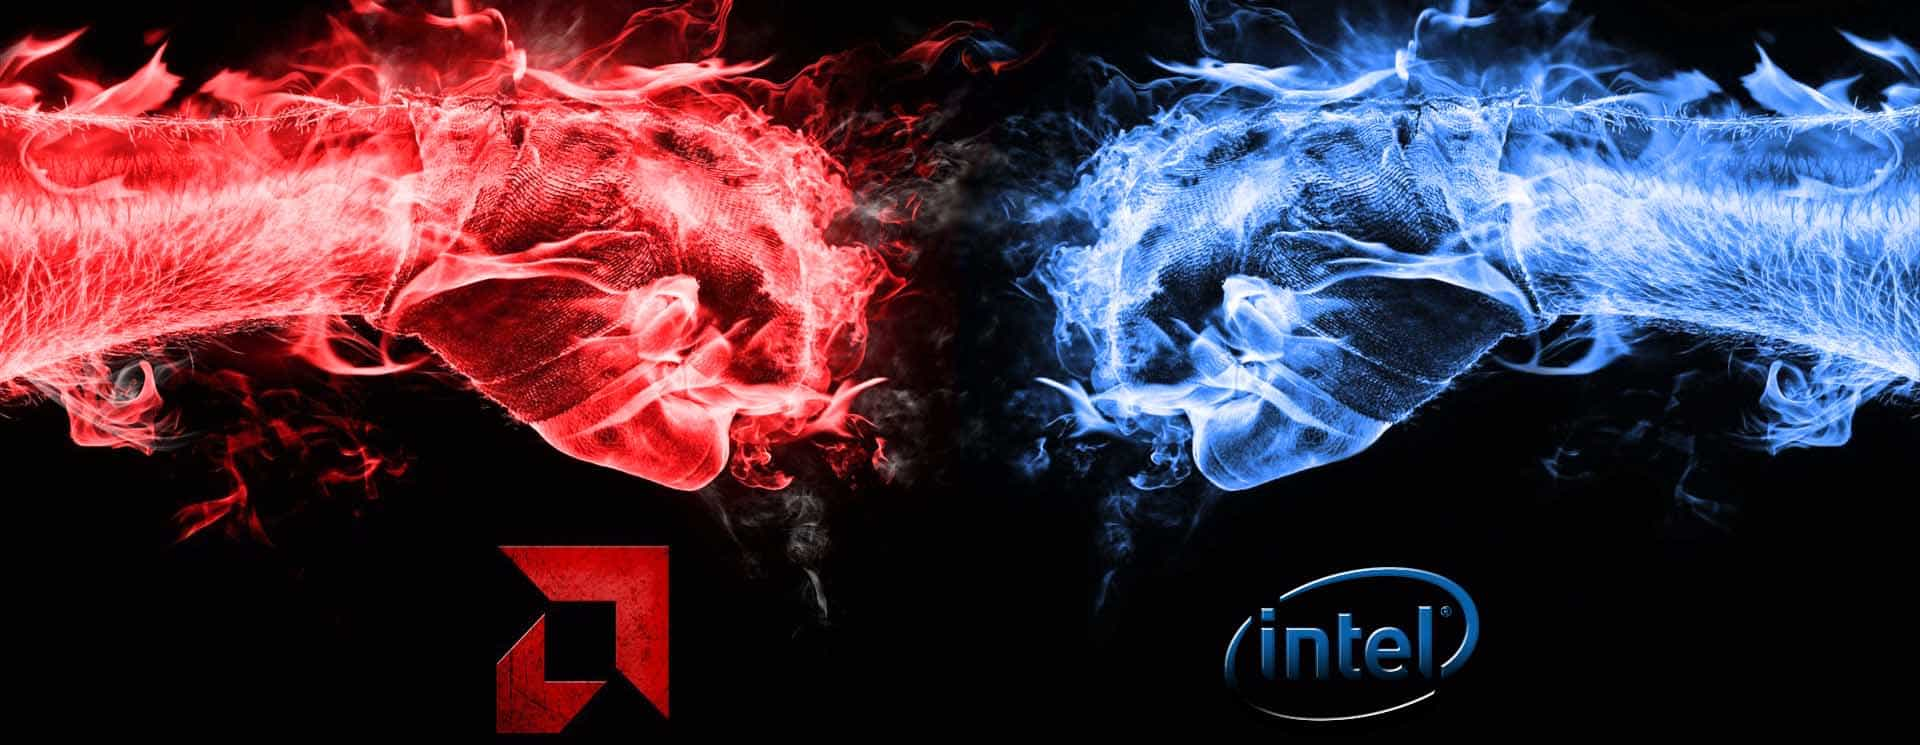 AMD Ryzen vs Intel – Which CPU Brand To Pick For Gaming